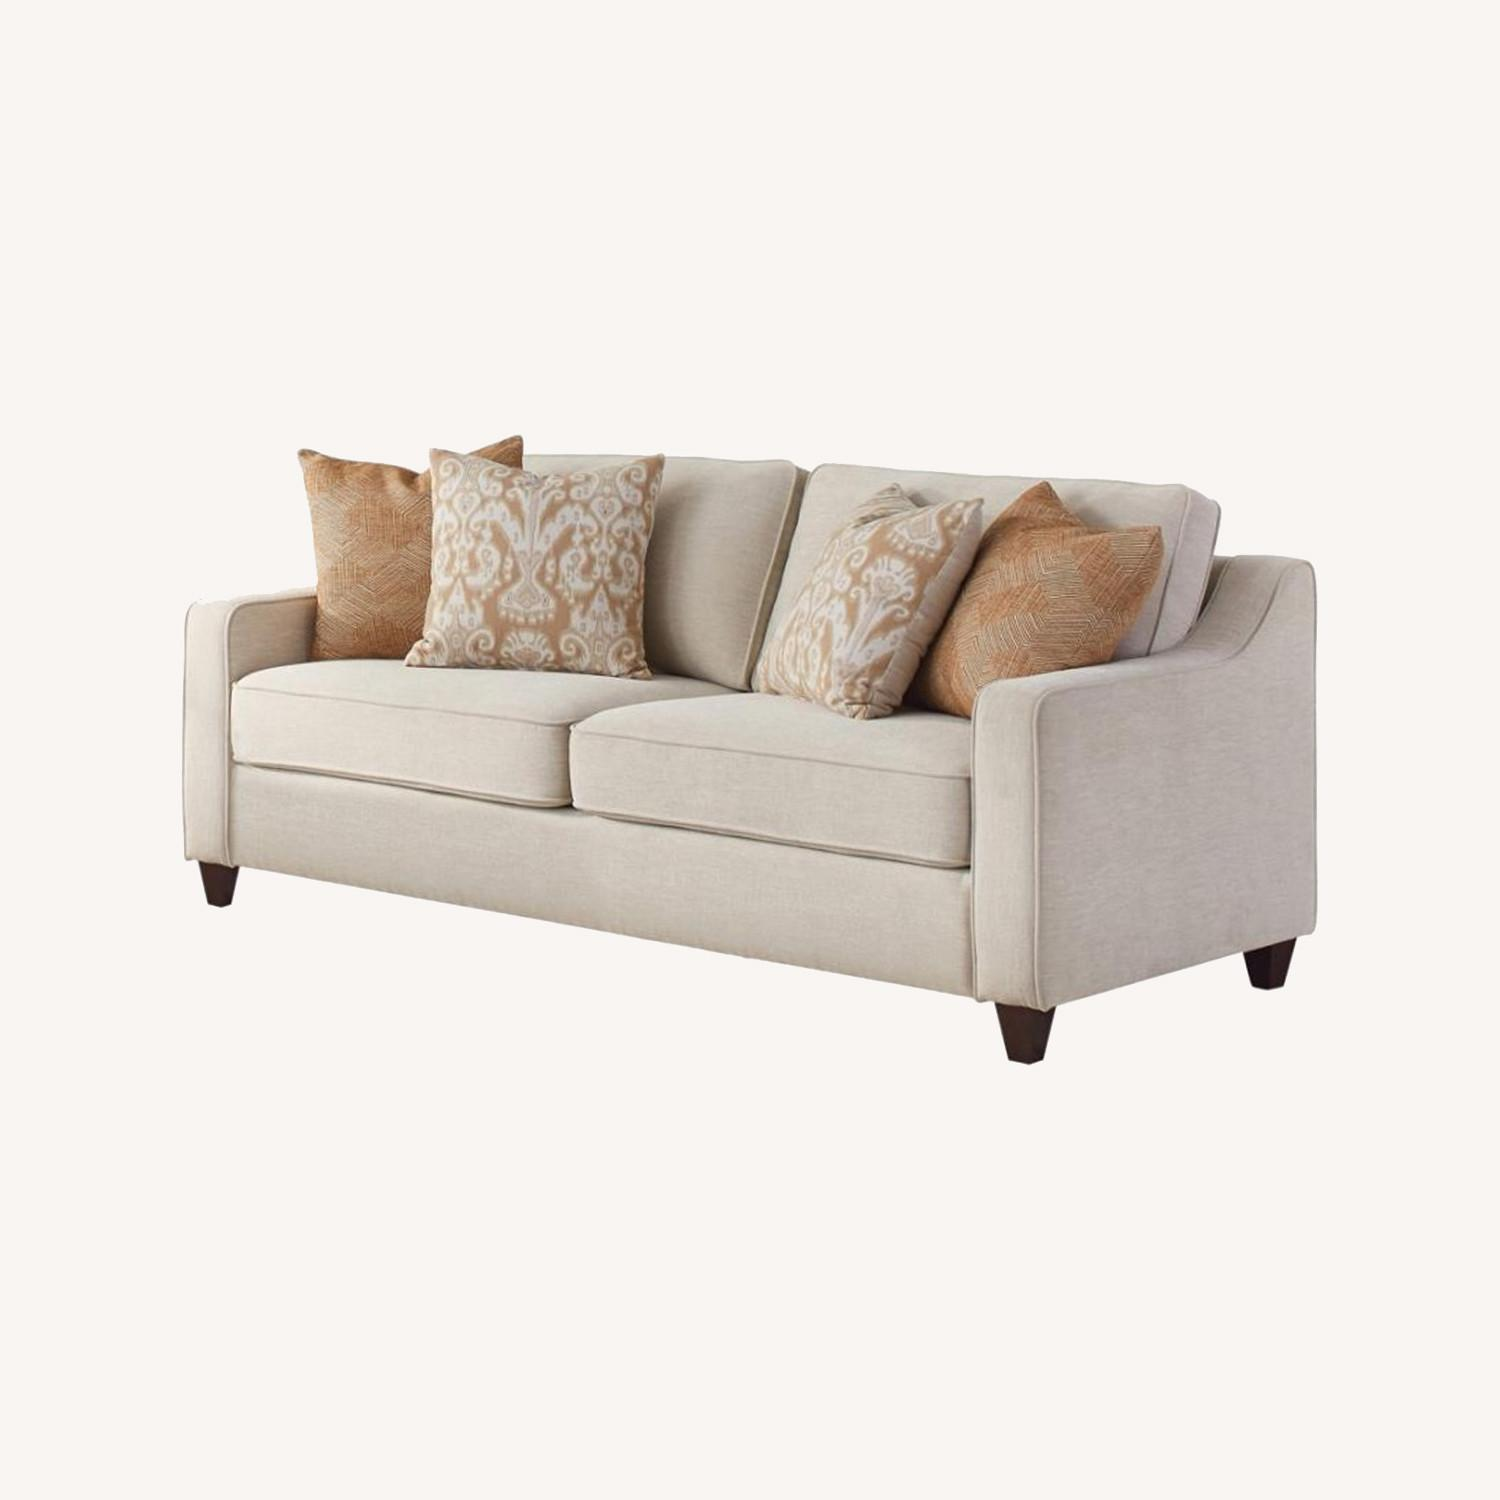 Sofa In Textured Beige Woven Chenille Finish - image-4